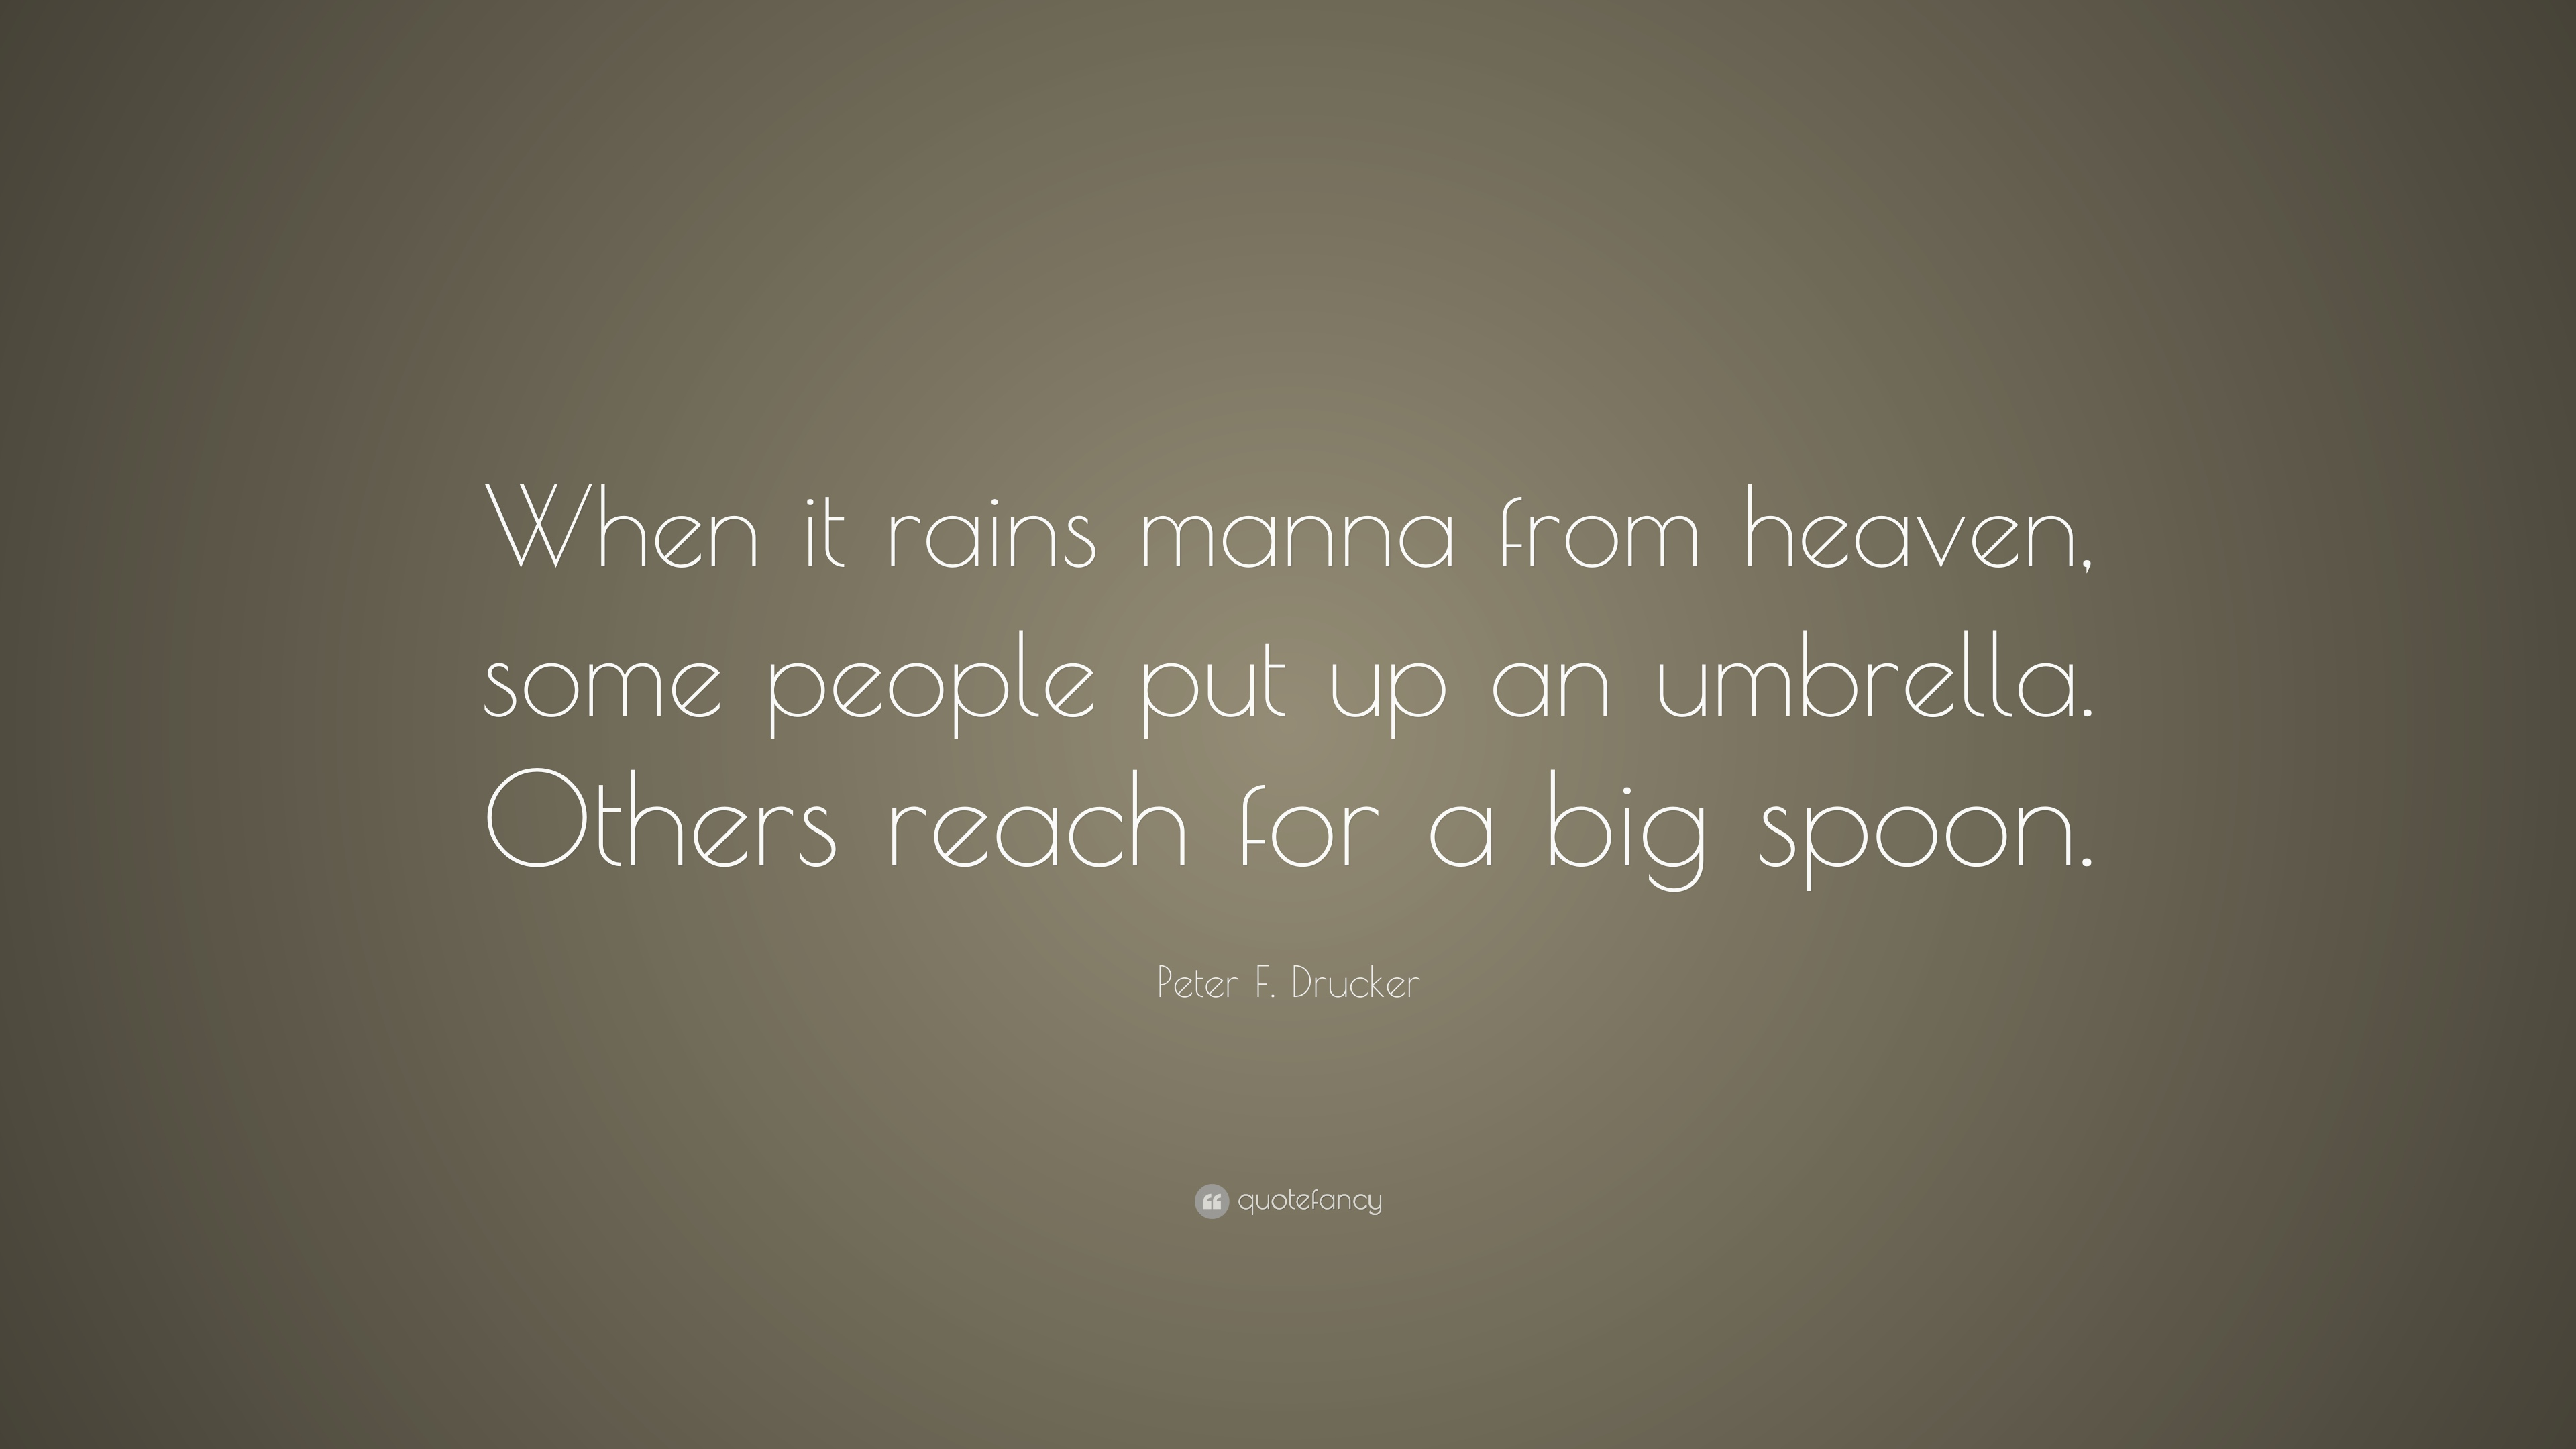 Peter F Drucker Quote When It Rains Manna From Heaven Some